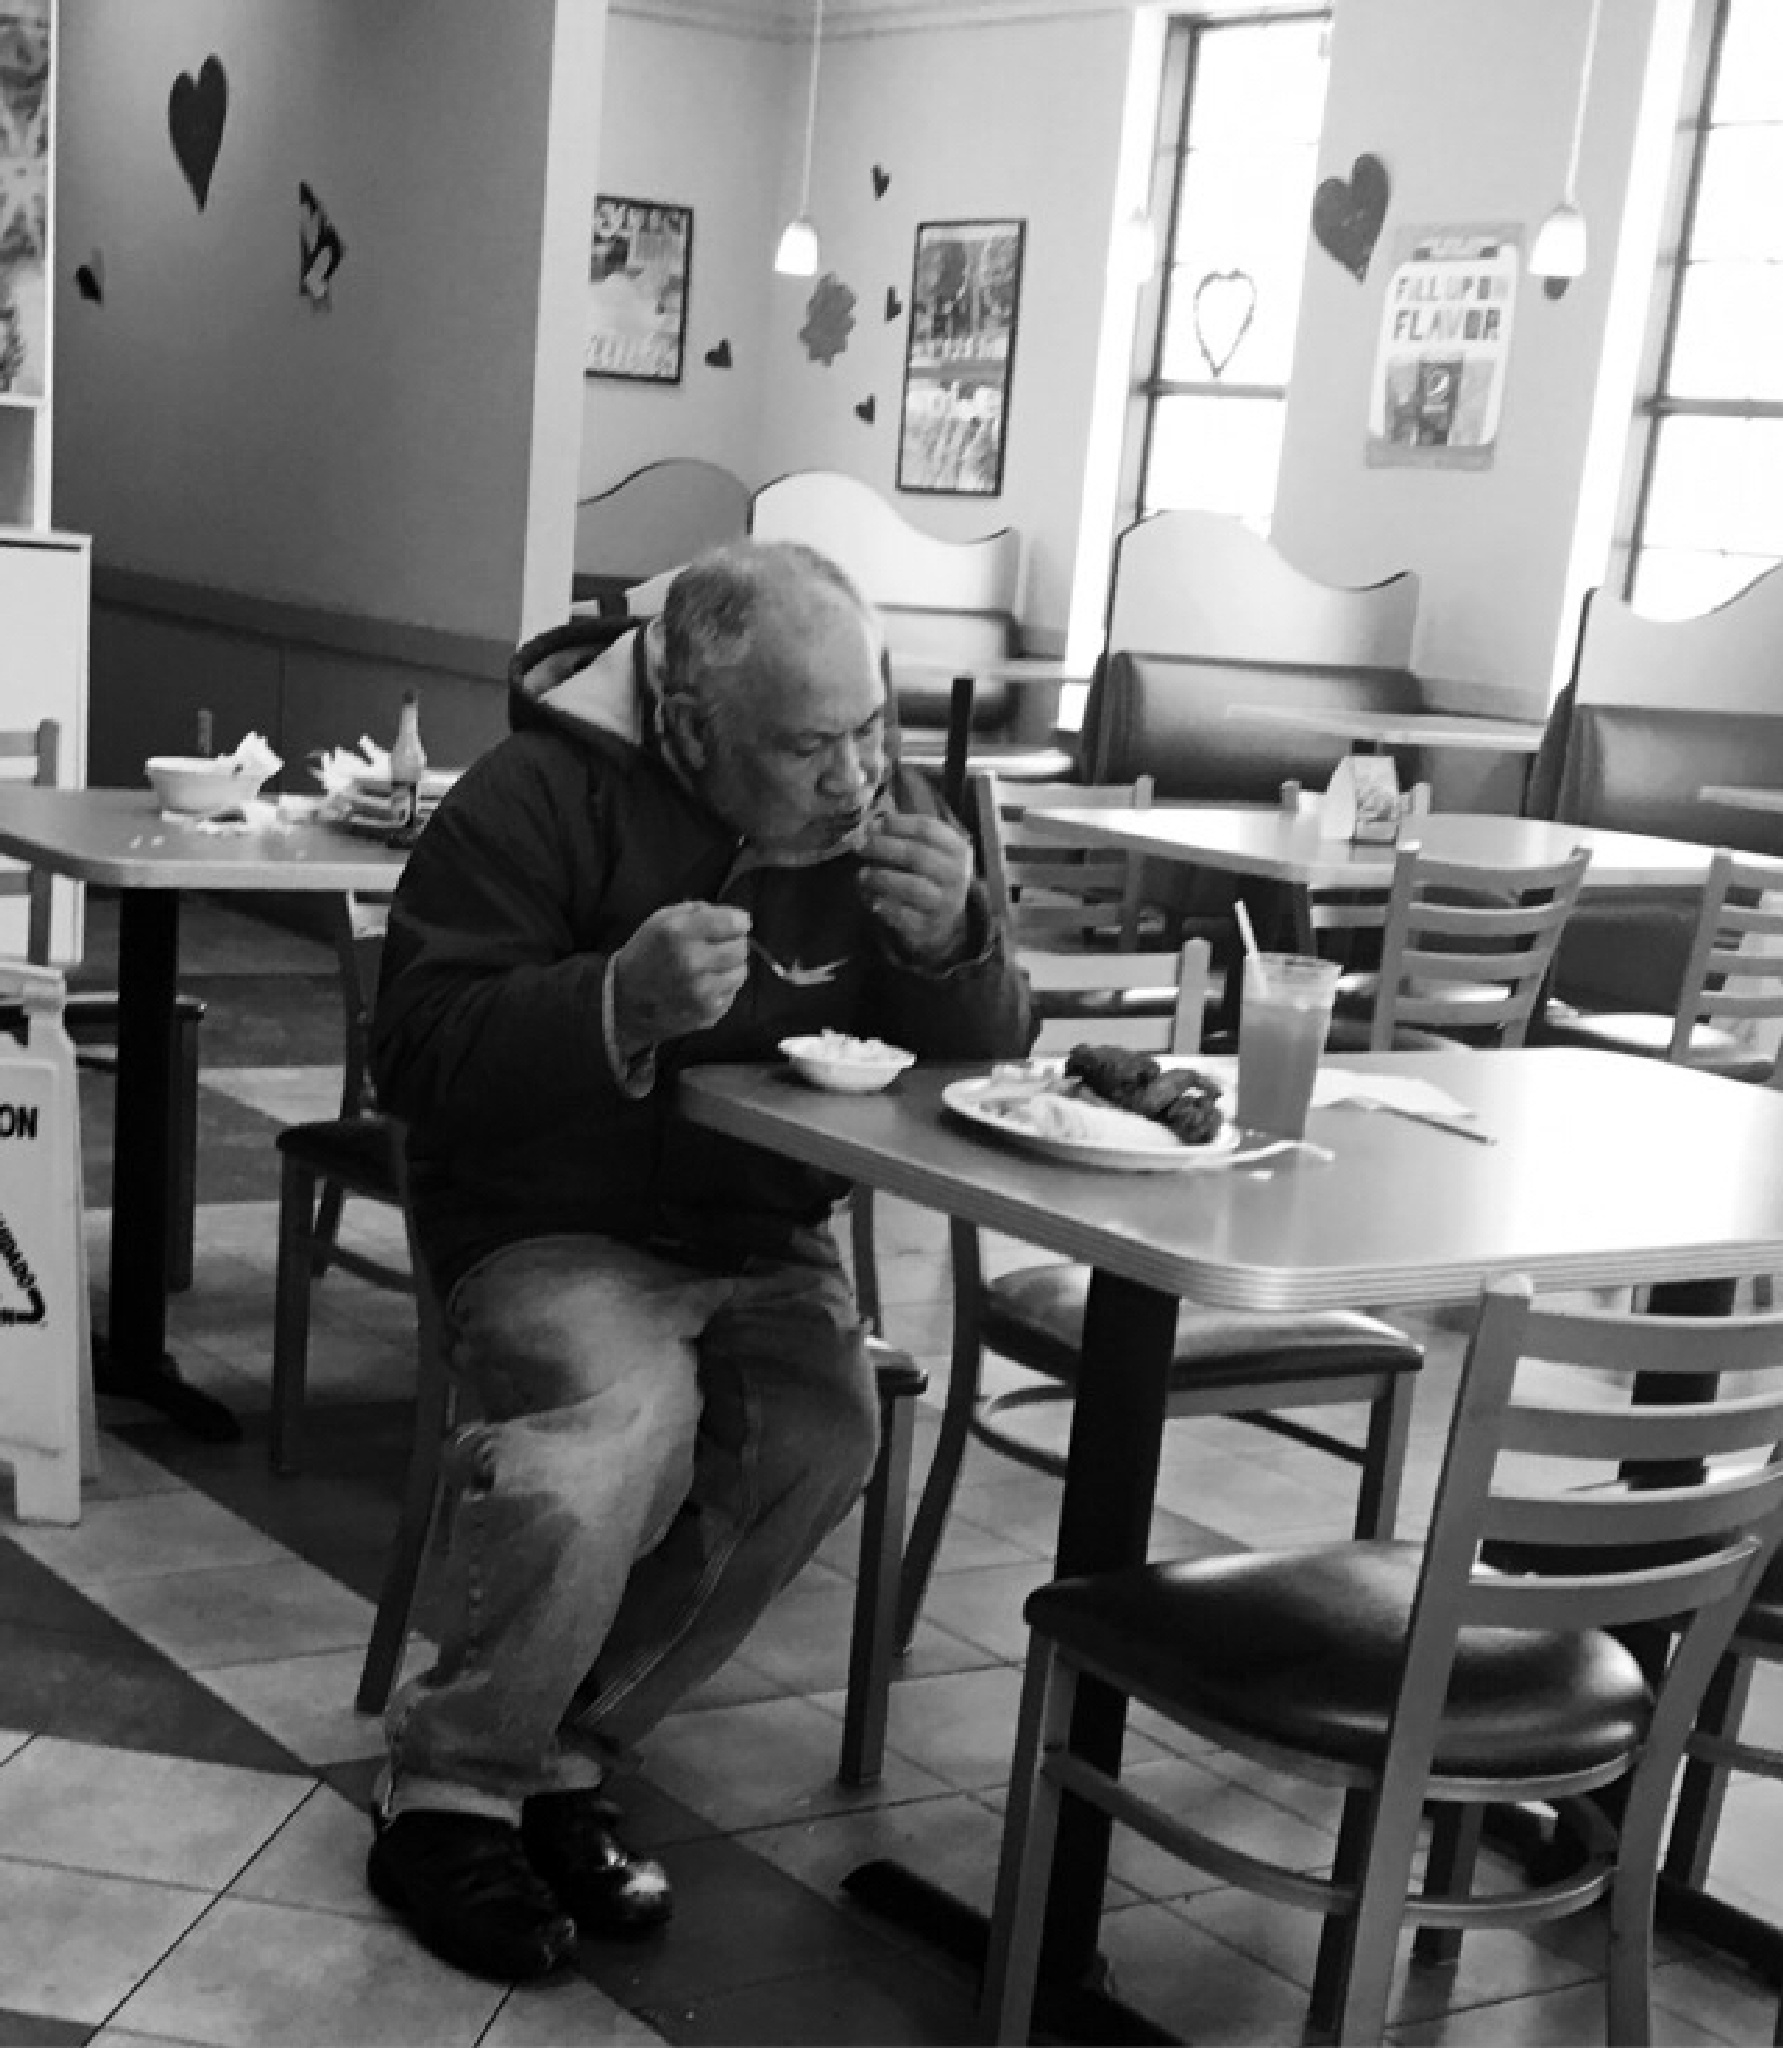 Man ejoying Food  by Edna Iris Rodriguez